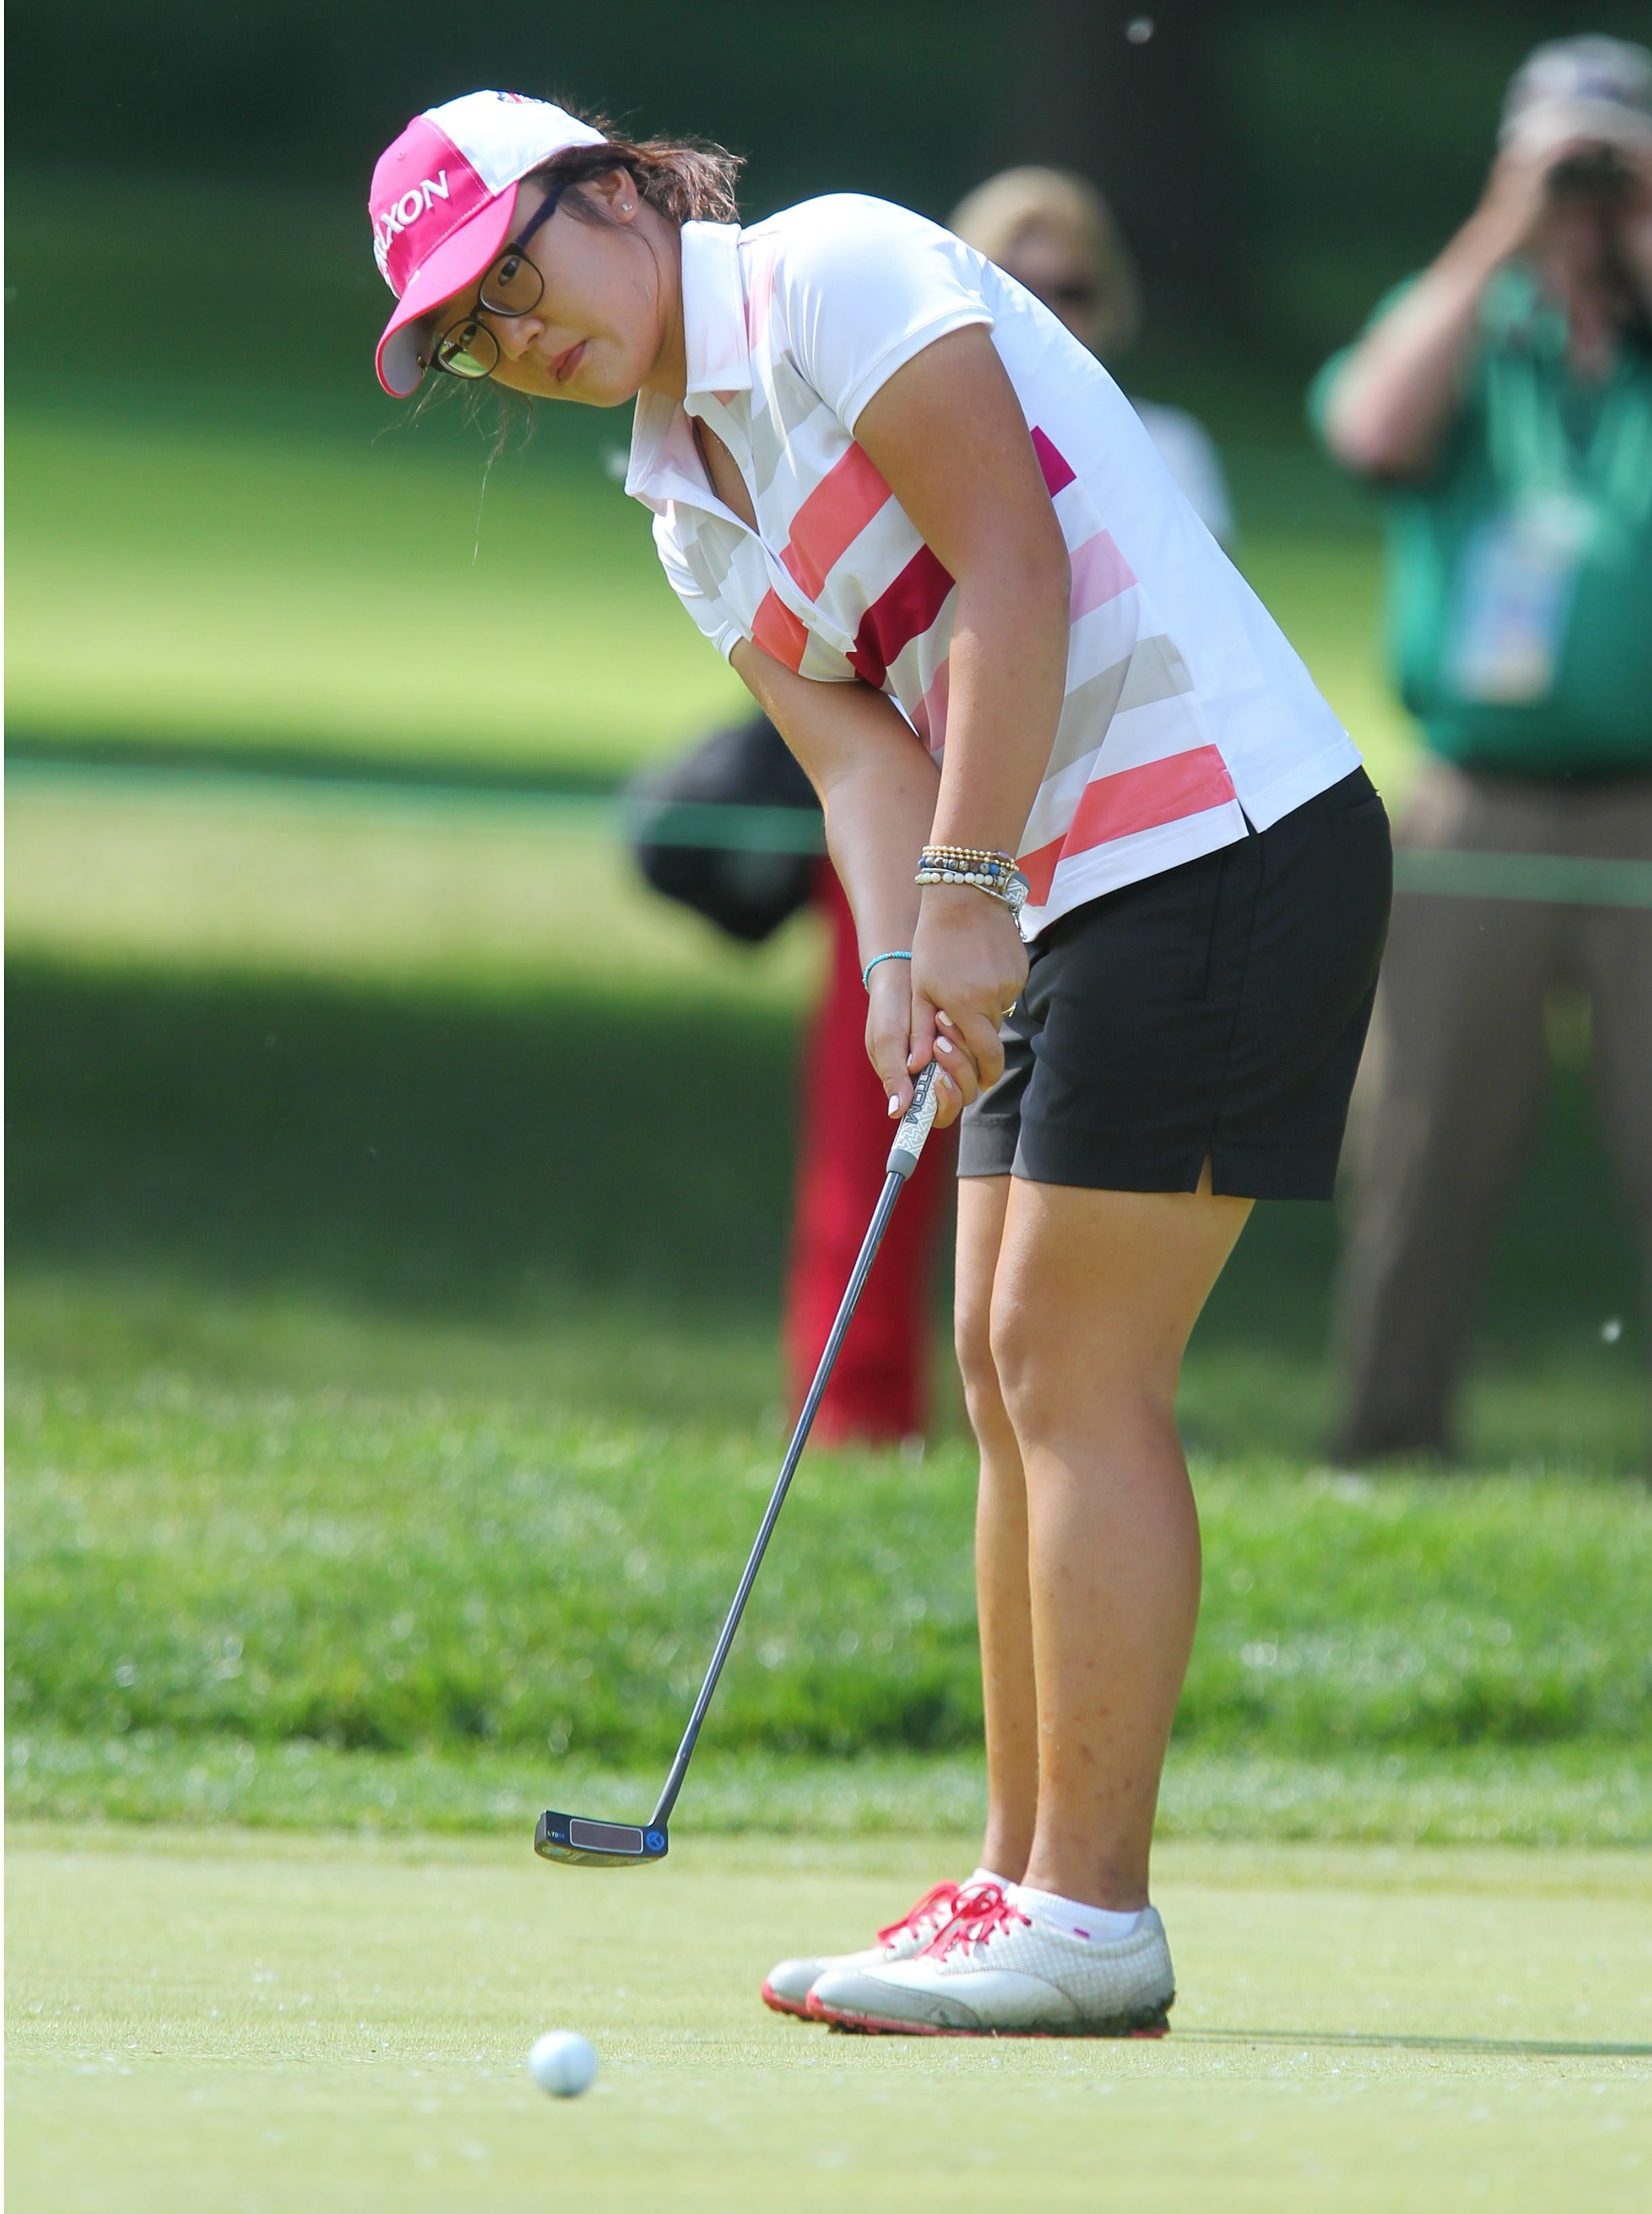 Lydia Ko, a 16-year-old who lives in New Zealand, is one of the best putters on the LPGA Tour.